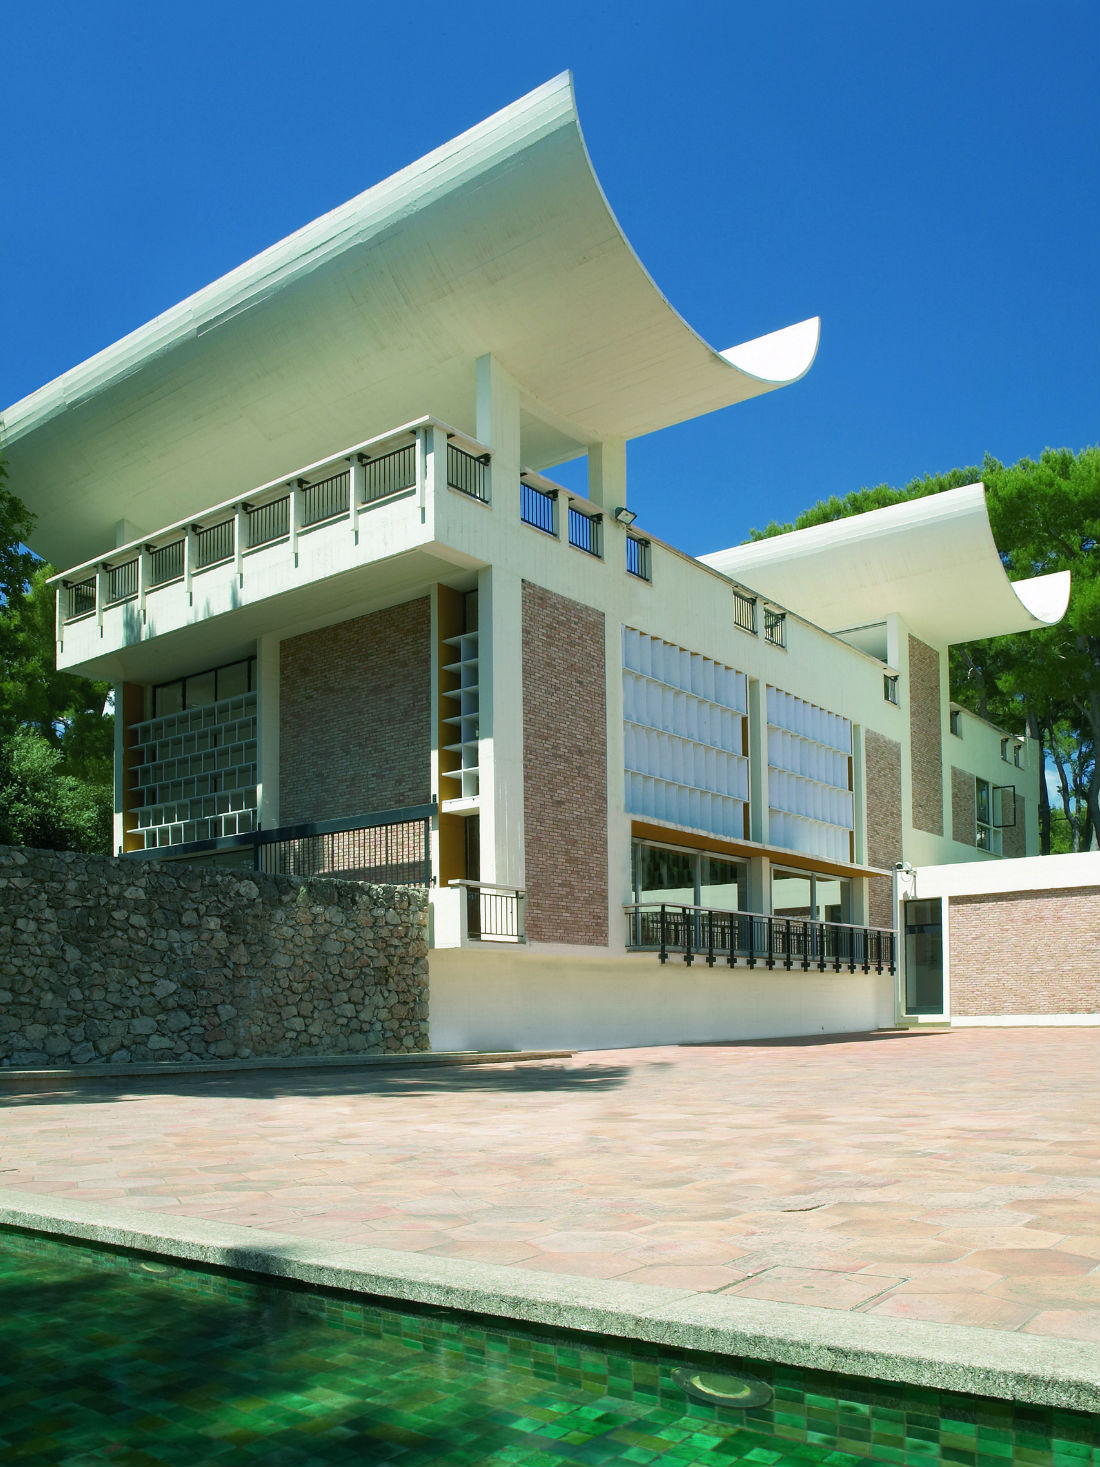 La Fondation Maeght et l'architecture de Josep Luis Sert ©Archives Fondation Maeght